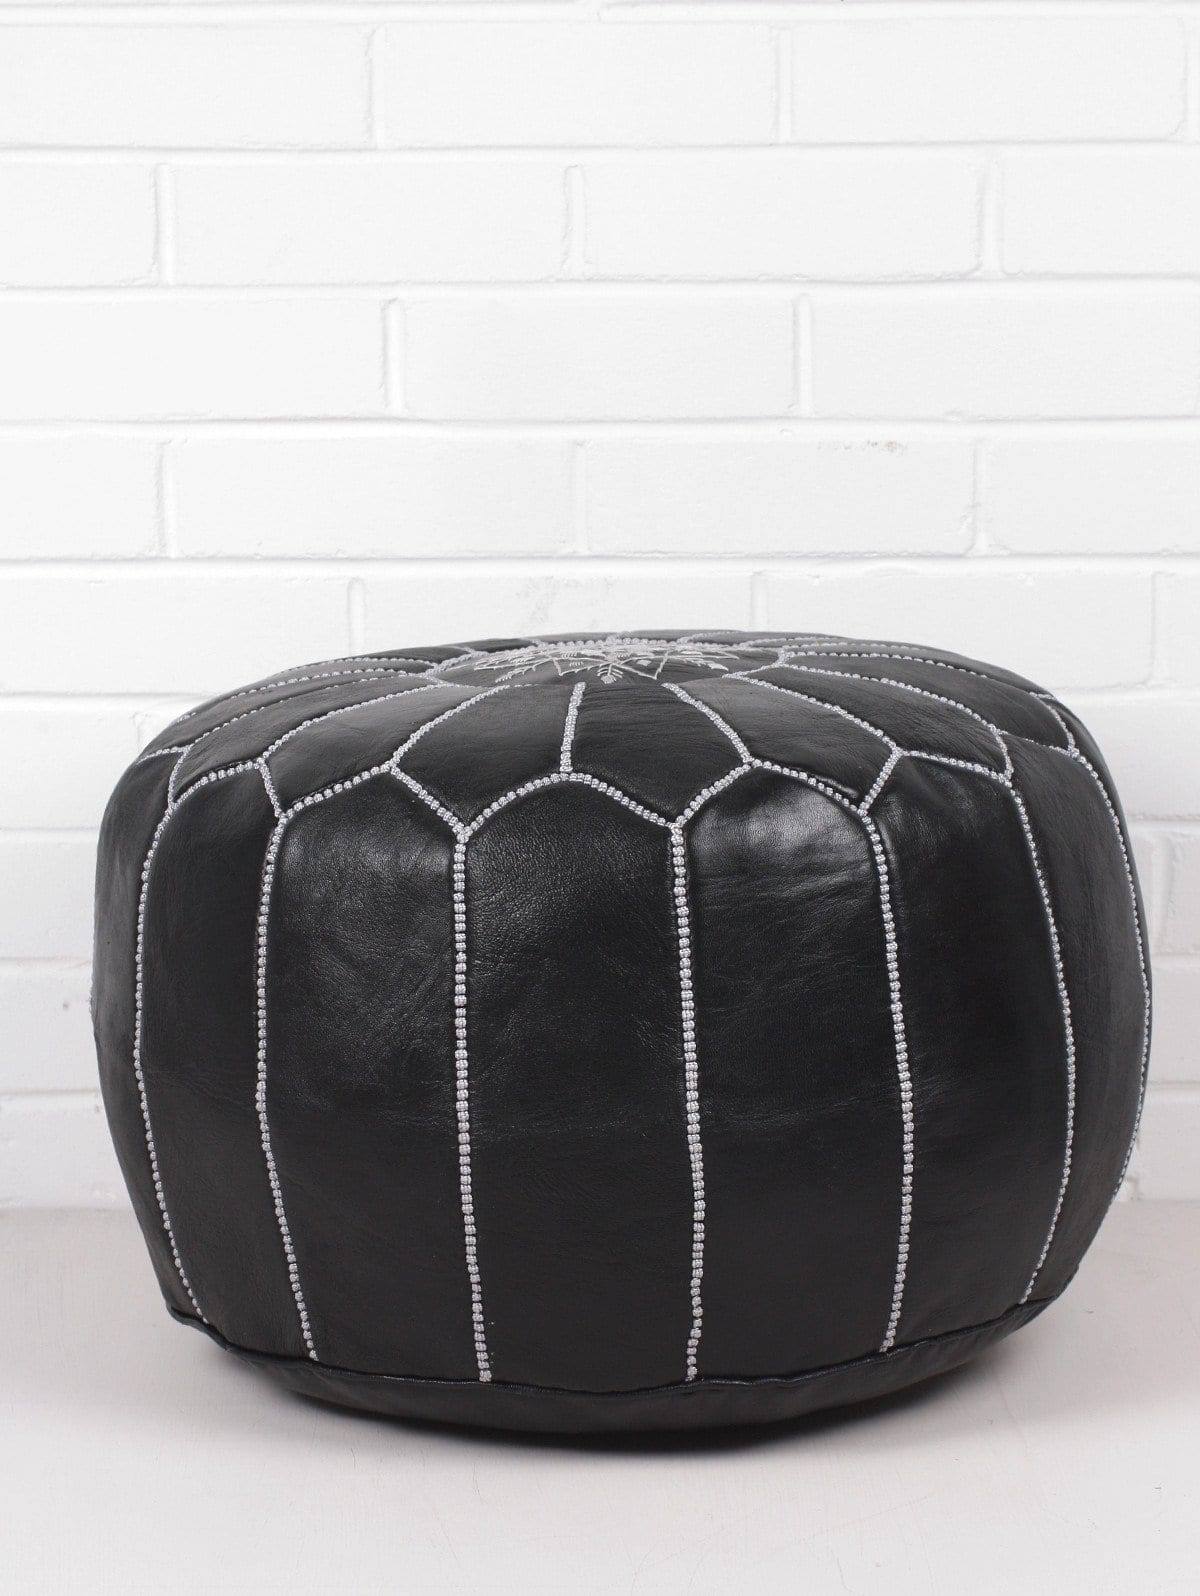 Moroccan Round Leather Pouf Black - Set of Two - Moroccan Interior